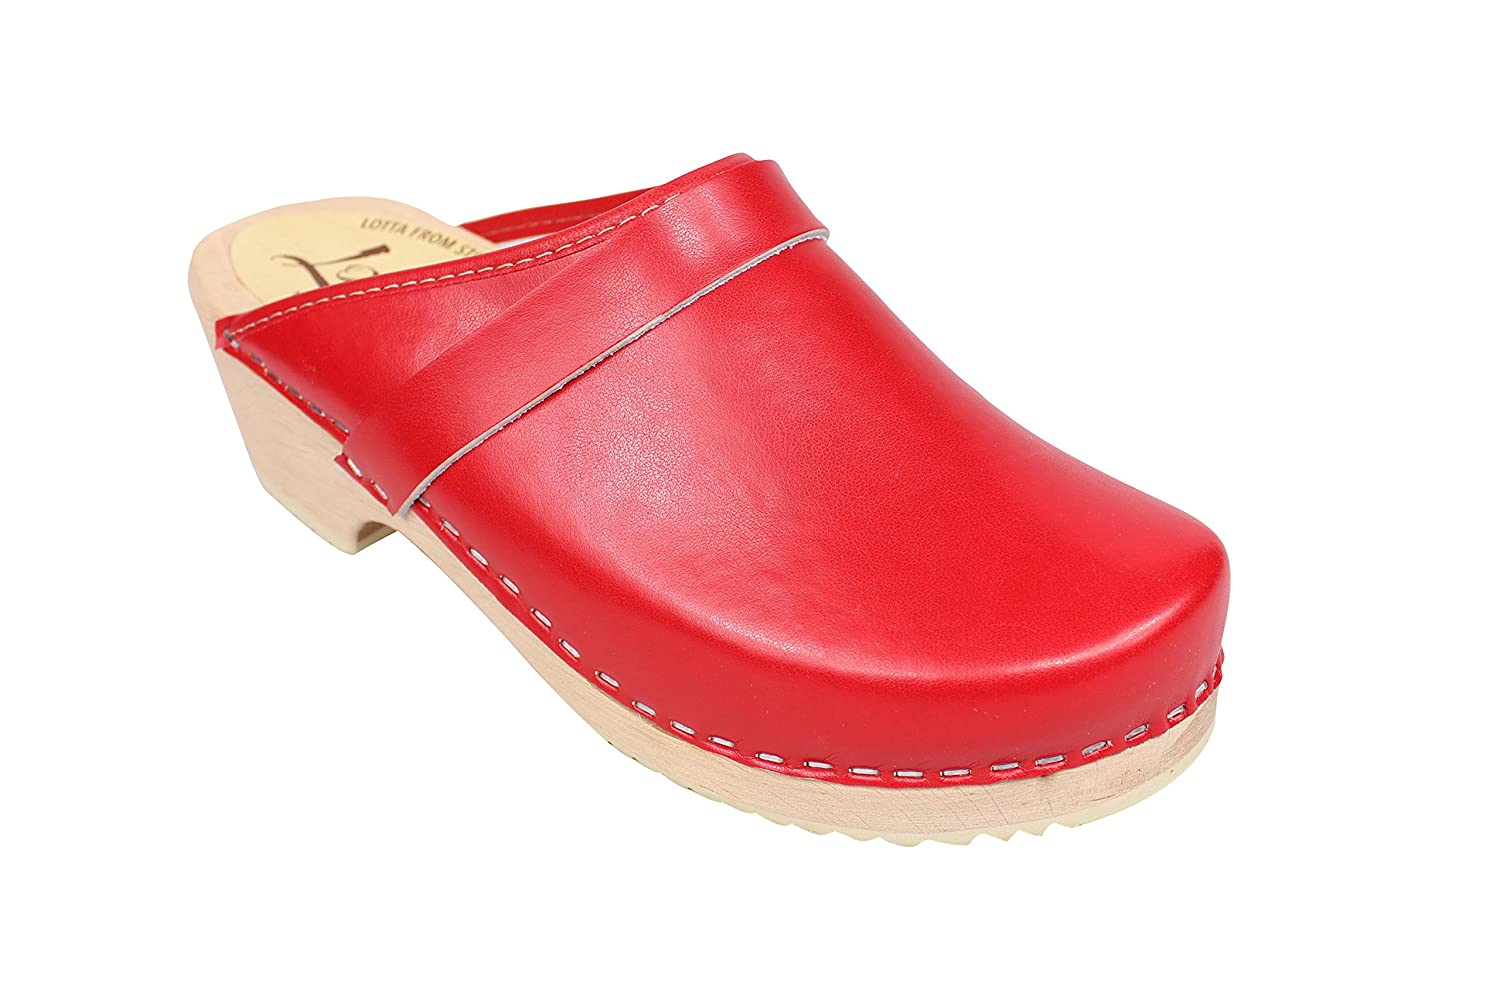 4f48279547cbb Lotta From Stockholm Swedish Clogs : Classic Clog in Red Leather